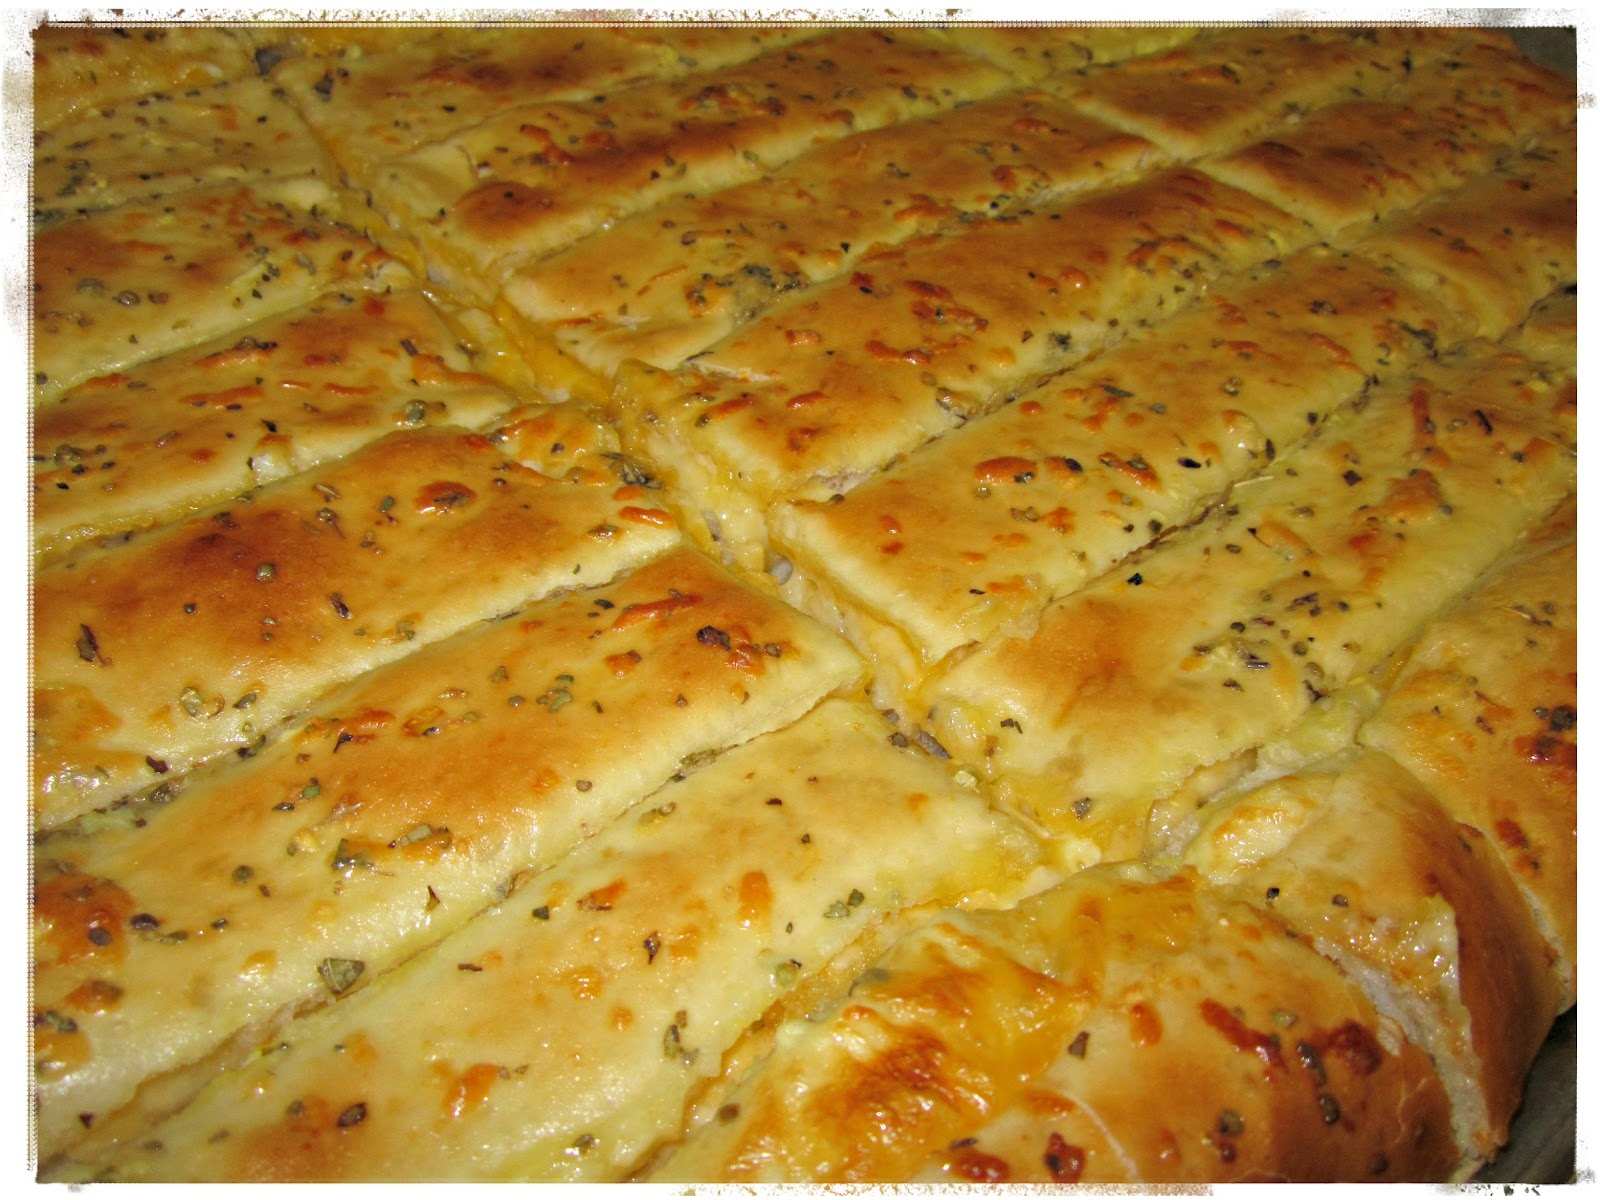 ... by AJK: Baker's Review Wednesday 43: Cheese Stuffed Breadsticks